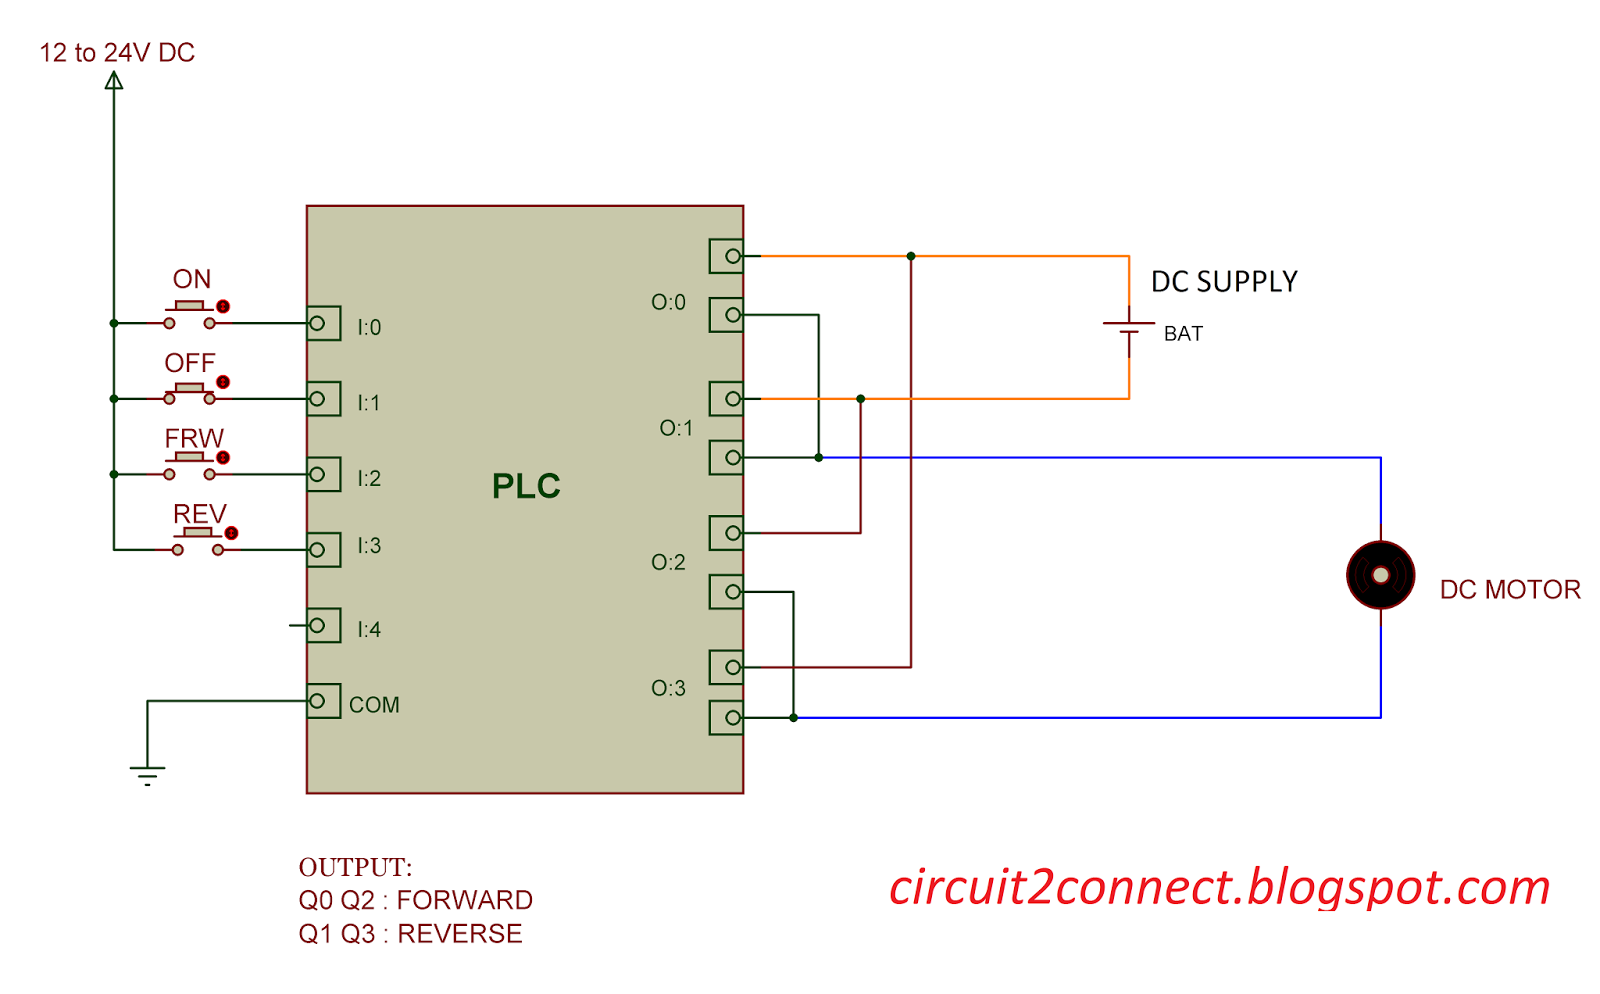 Direction Control Of DC motor Using PLC  Circuit 2 Connect